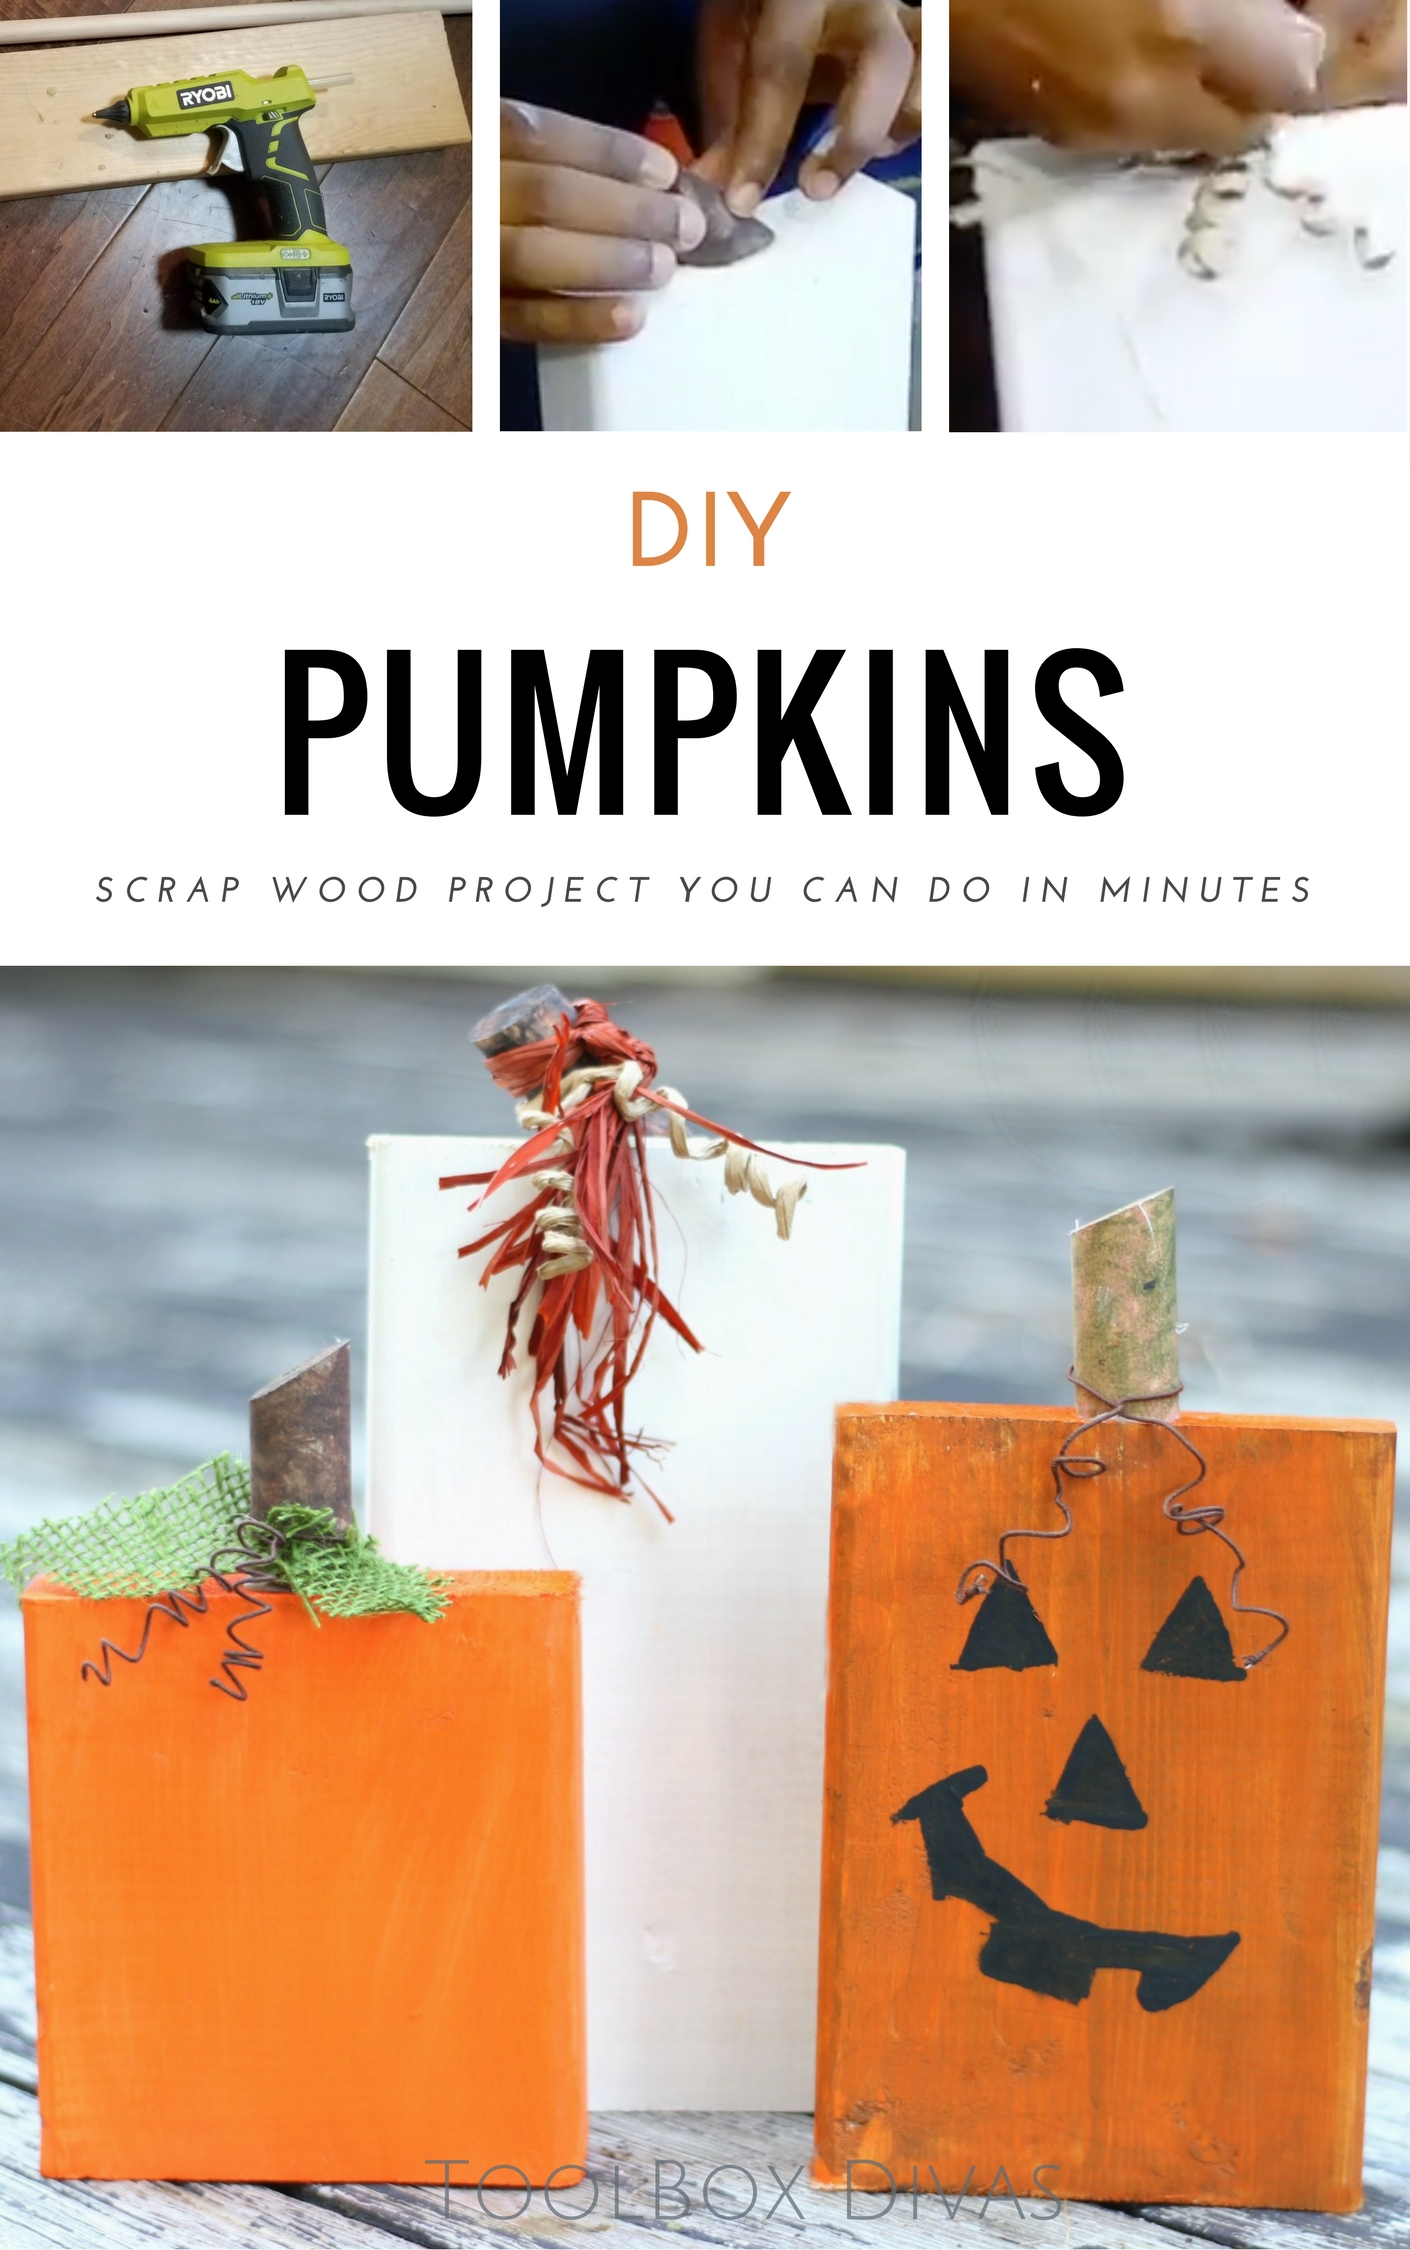 Create these scrap wood pumpkins in under 30 minutes.  Great quick weekend craft project. @ToolboxDivas #ToolboxDivas #Fall #Falldecor #Halloween